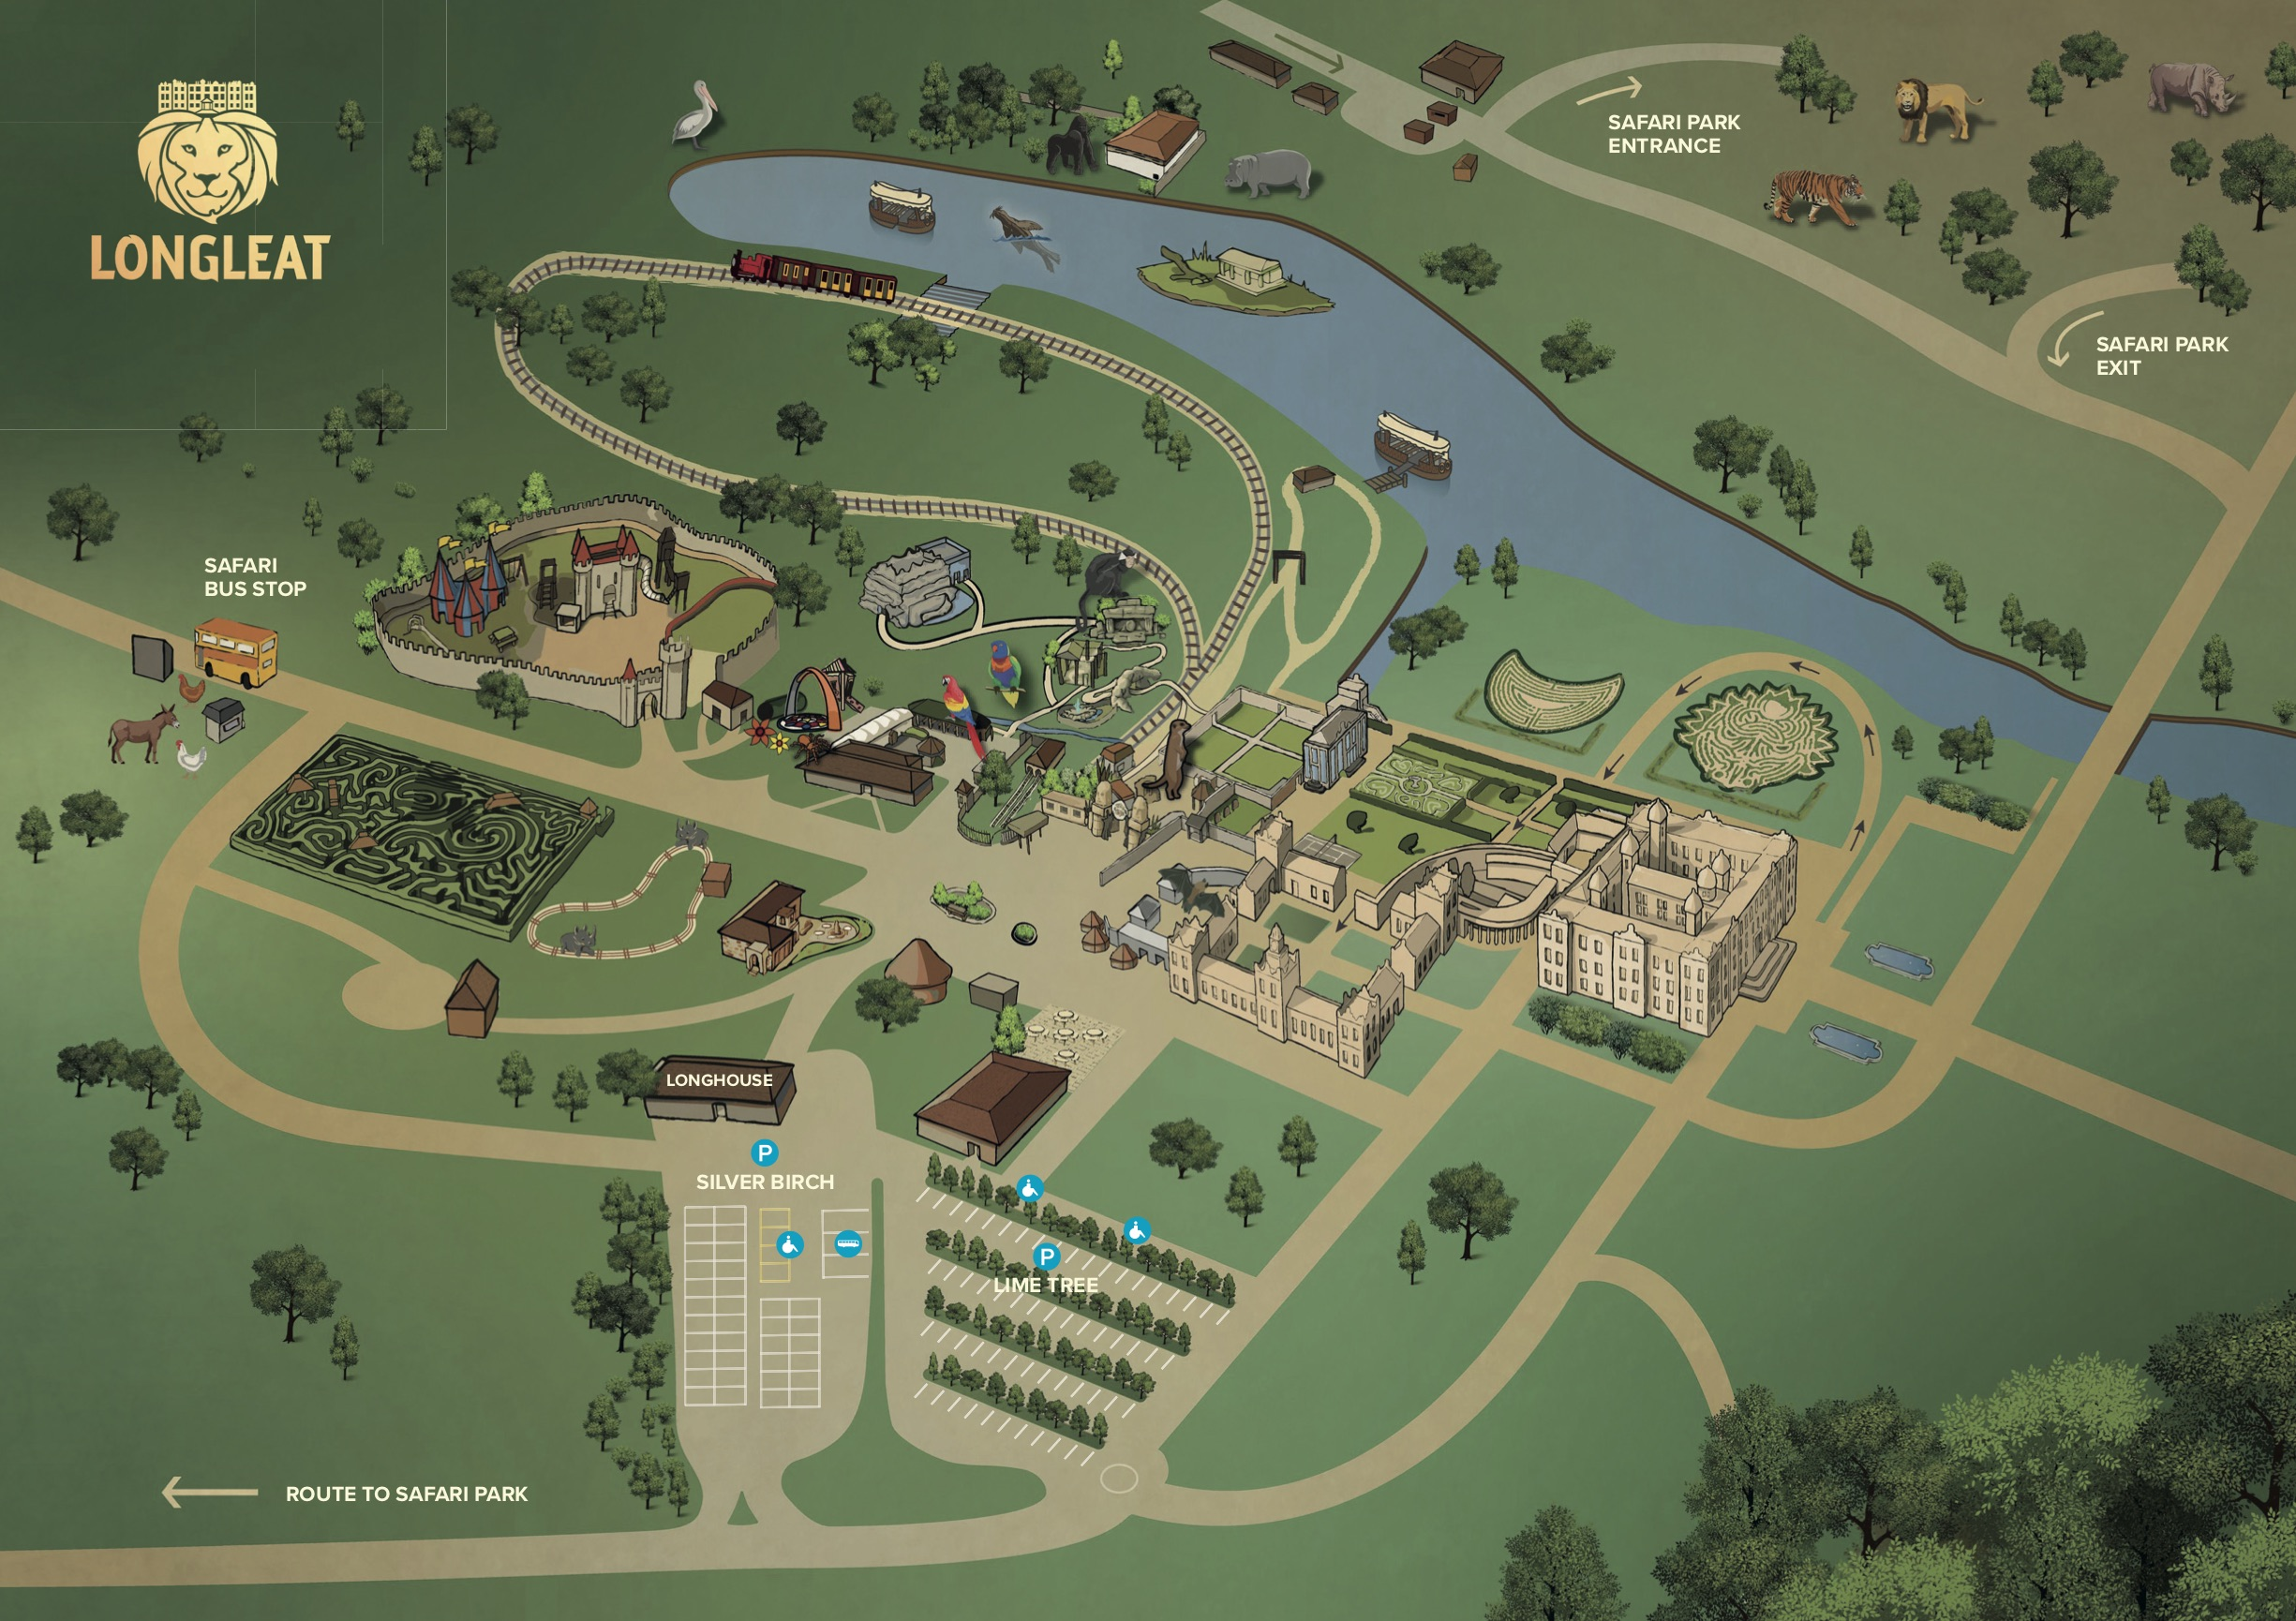 MAP OF LONGLEAT SHOWING LONGHOUSE & PARKING